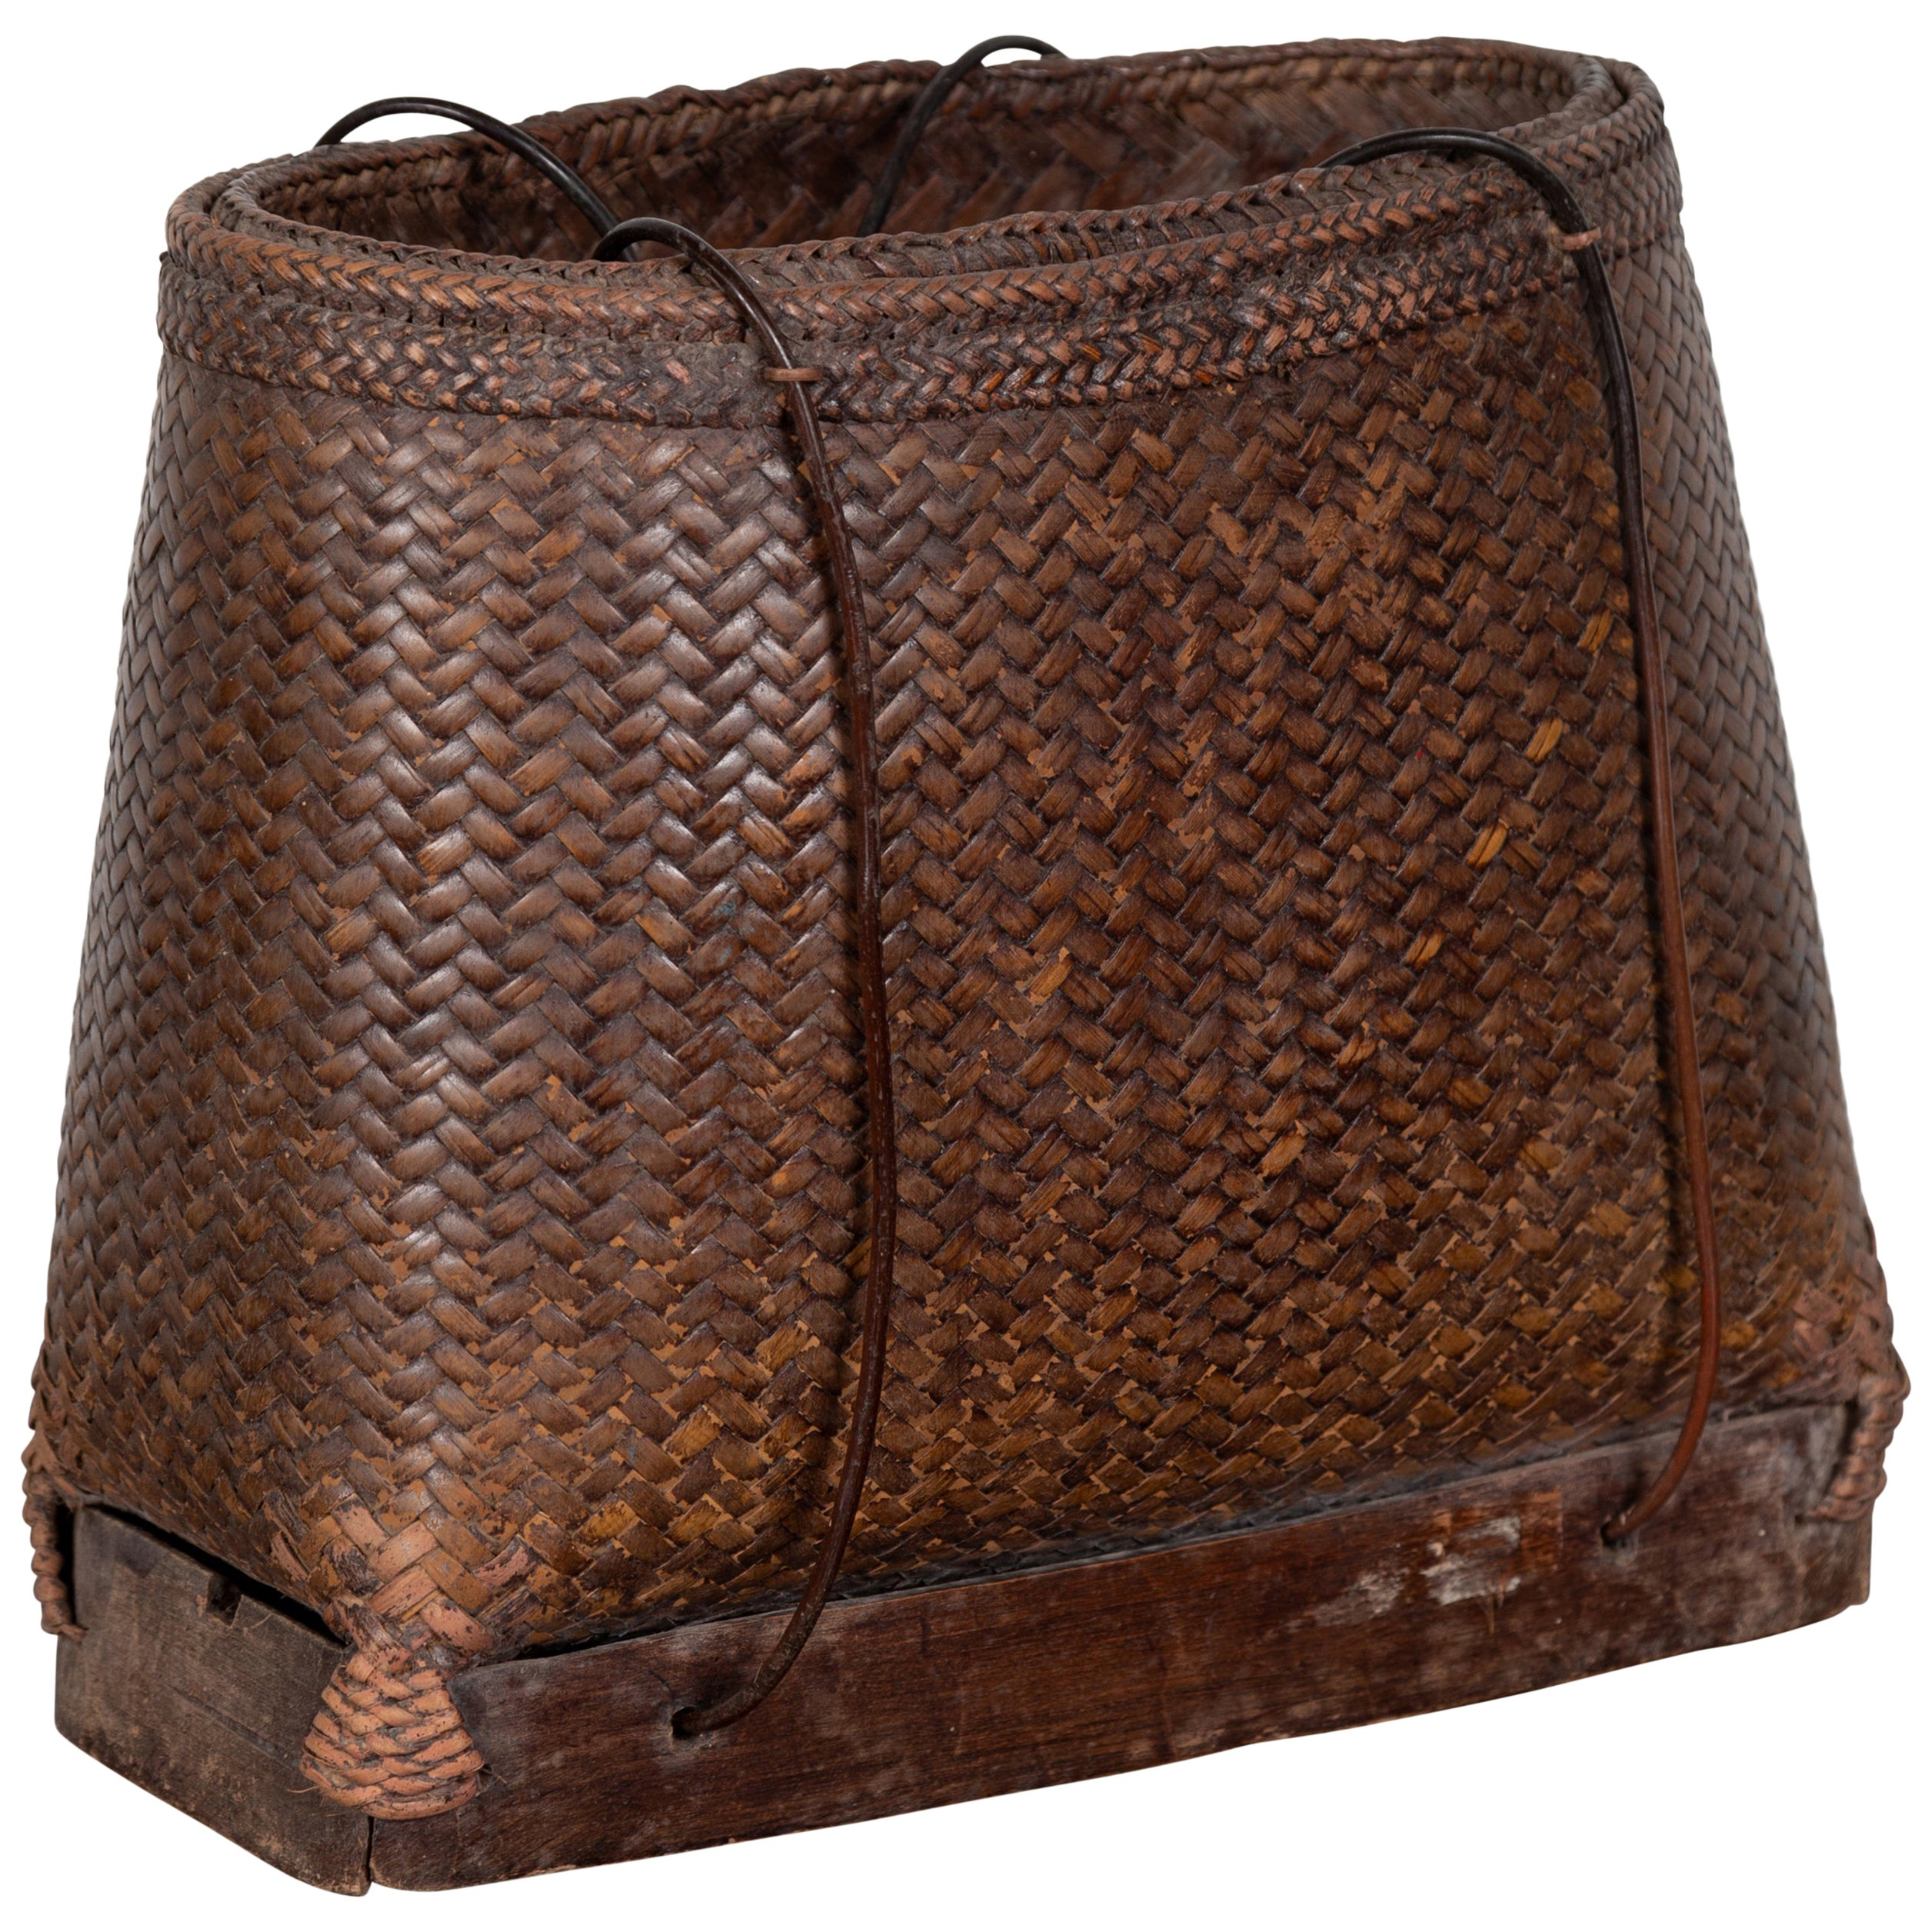 Antique Early 20th Century Small Woven Grain Basket from the Philippines